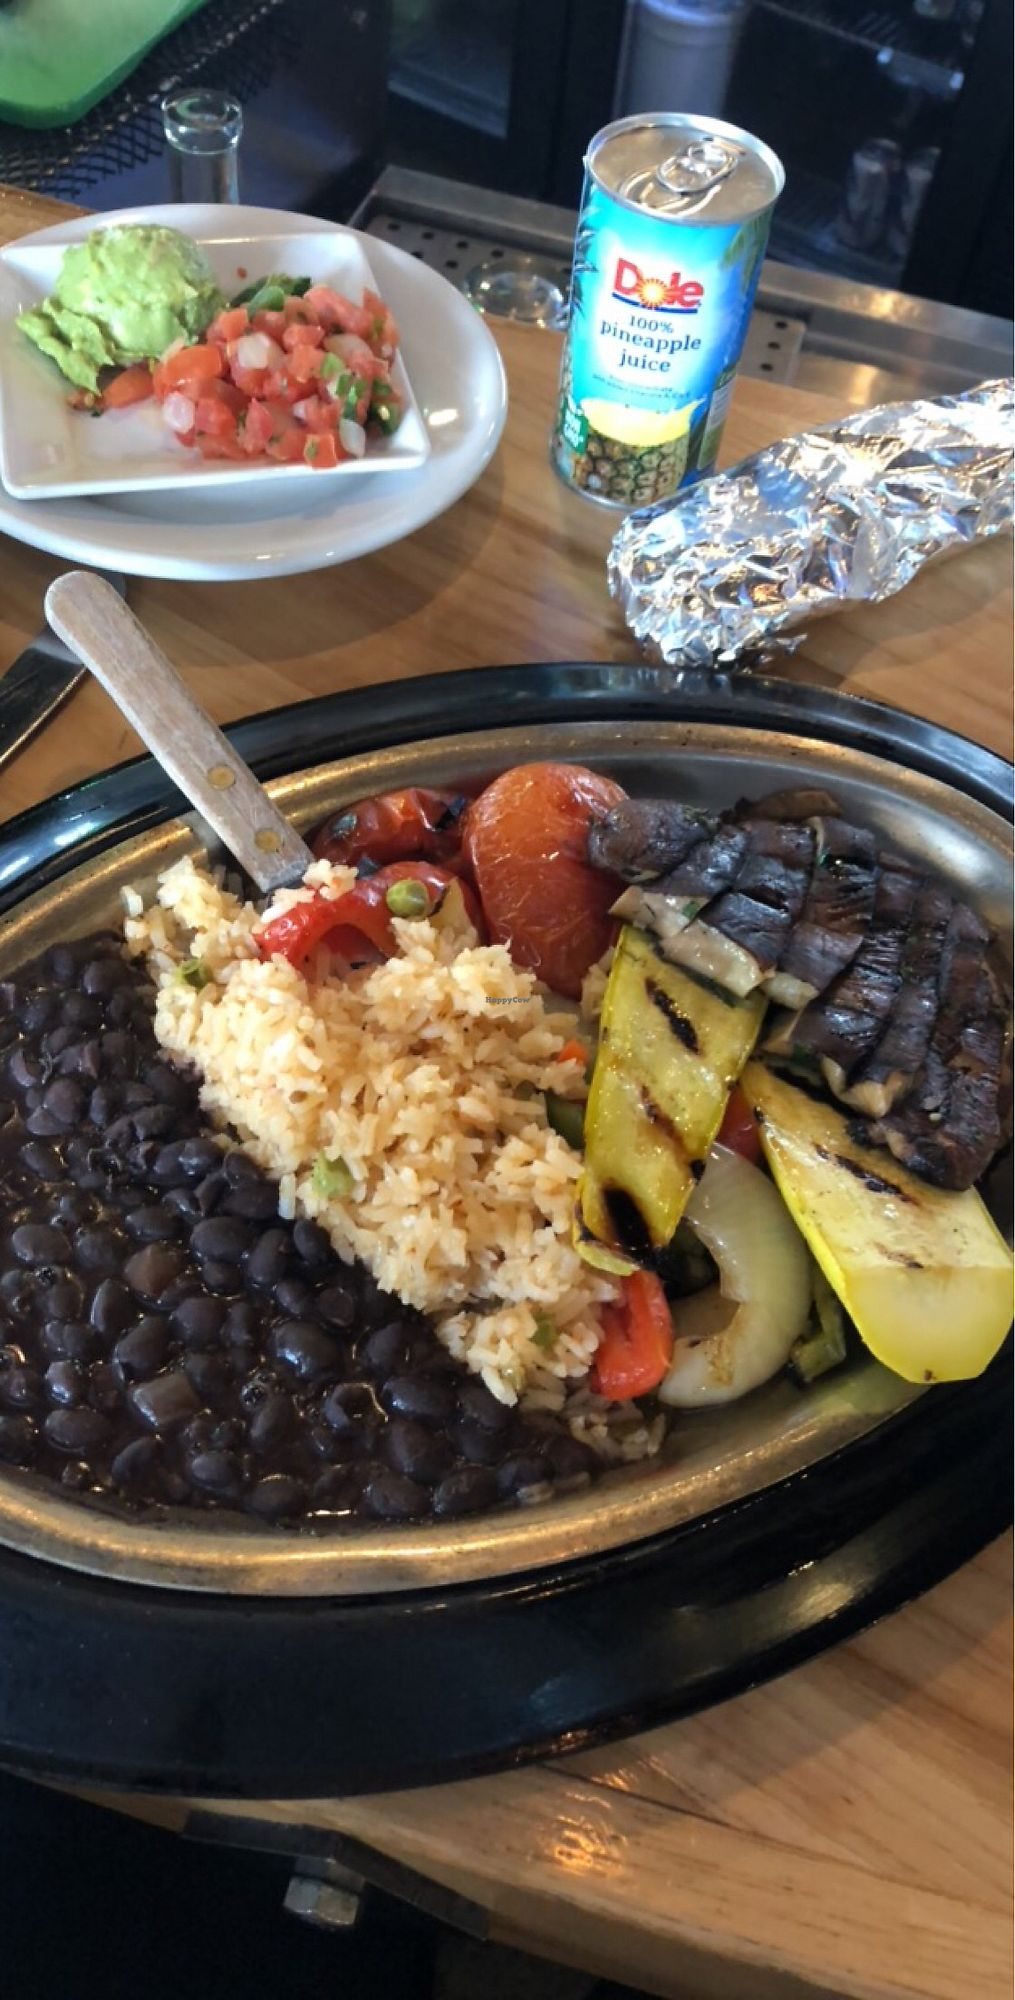 "Photo of Rio Grande Mexican Restaurant  by <a href=""/members/profile/AshleyJoNix"">AshleyJoNix</a> <br/>Veggie fajitas <br/> January 19, 2018  - <a href='/contact/abuse/image/76550/348417'>Report</a>"